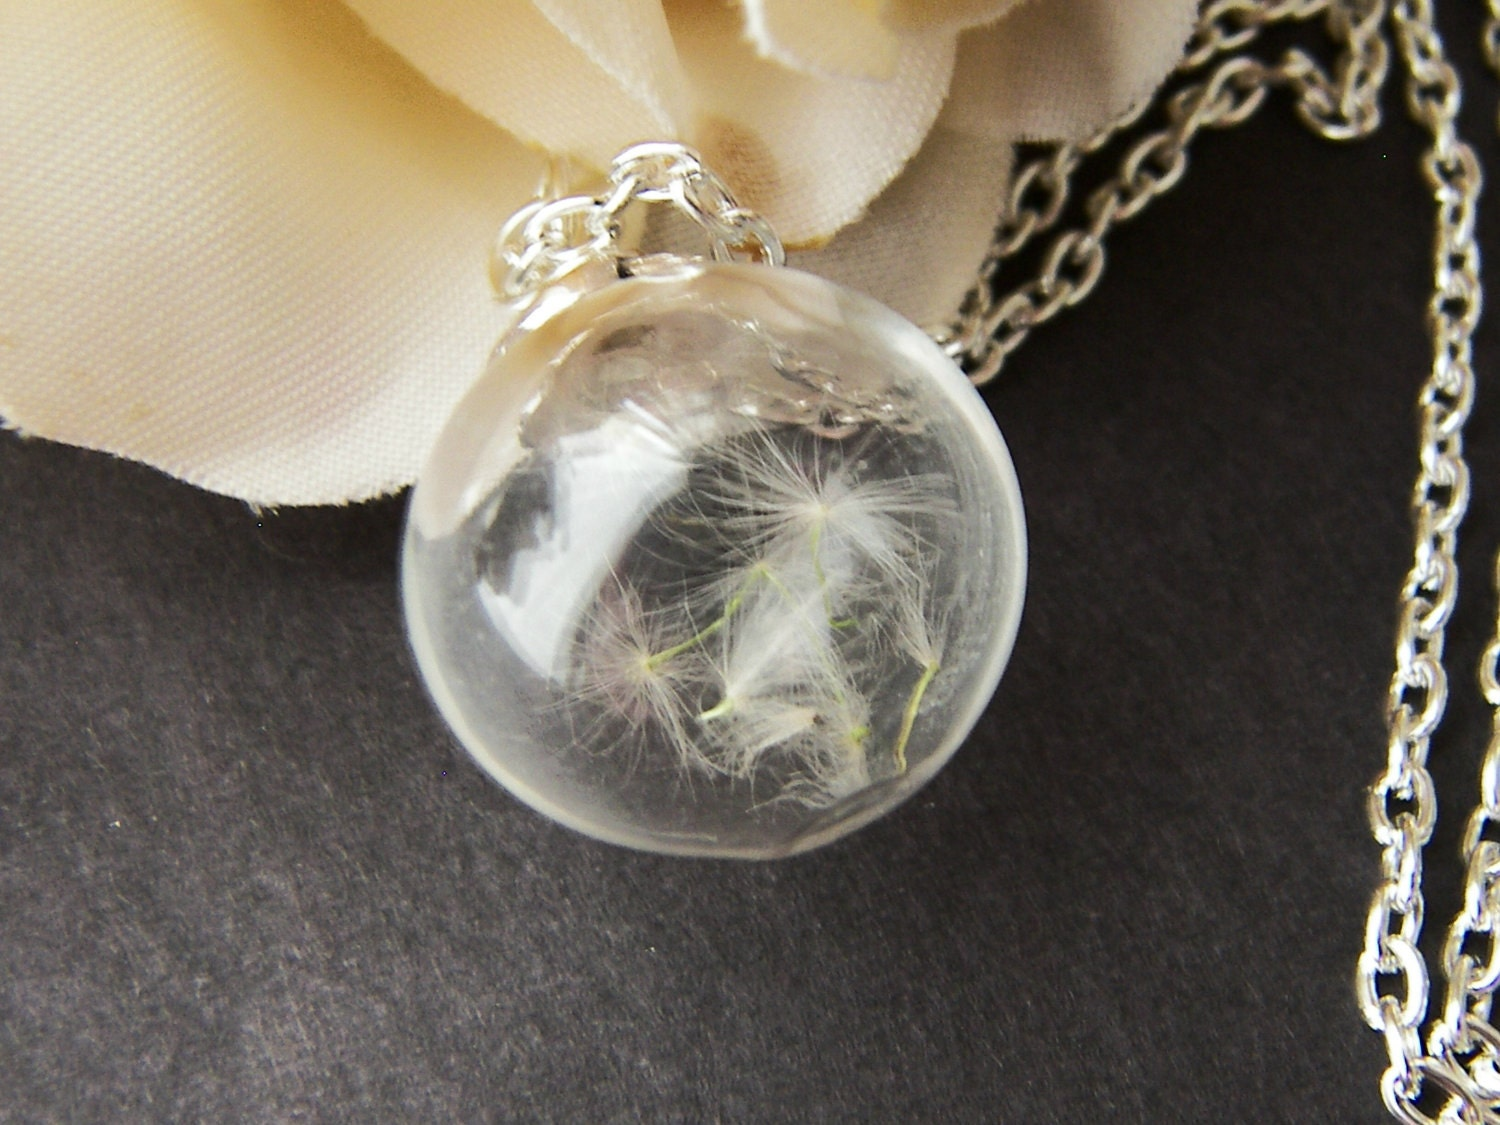 dandelion seed necklace handblown glass nature necklace